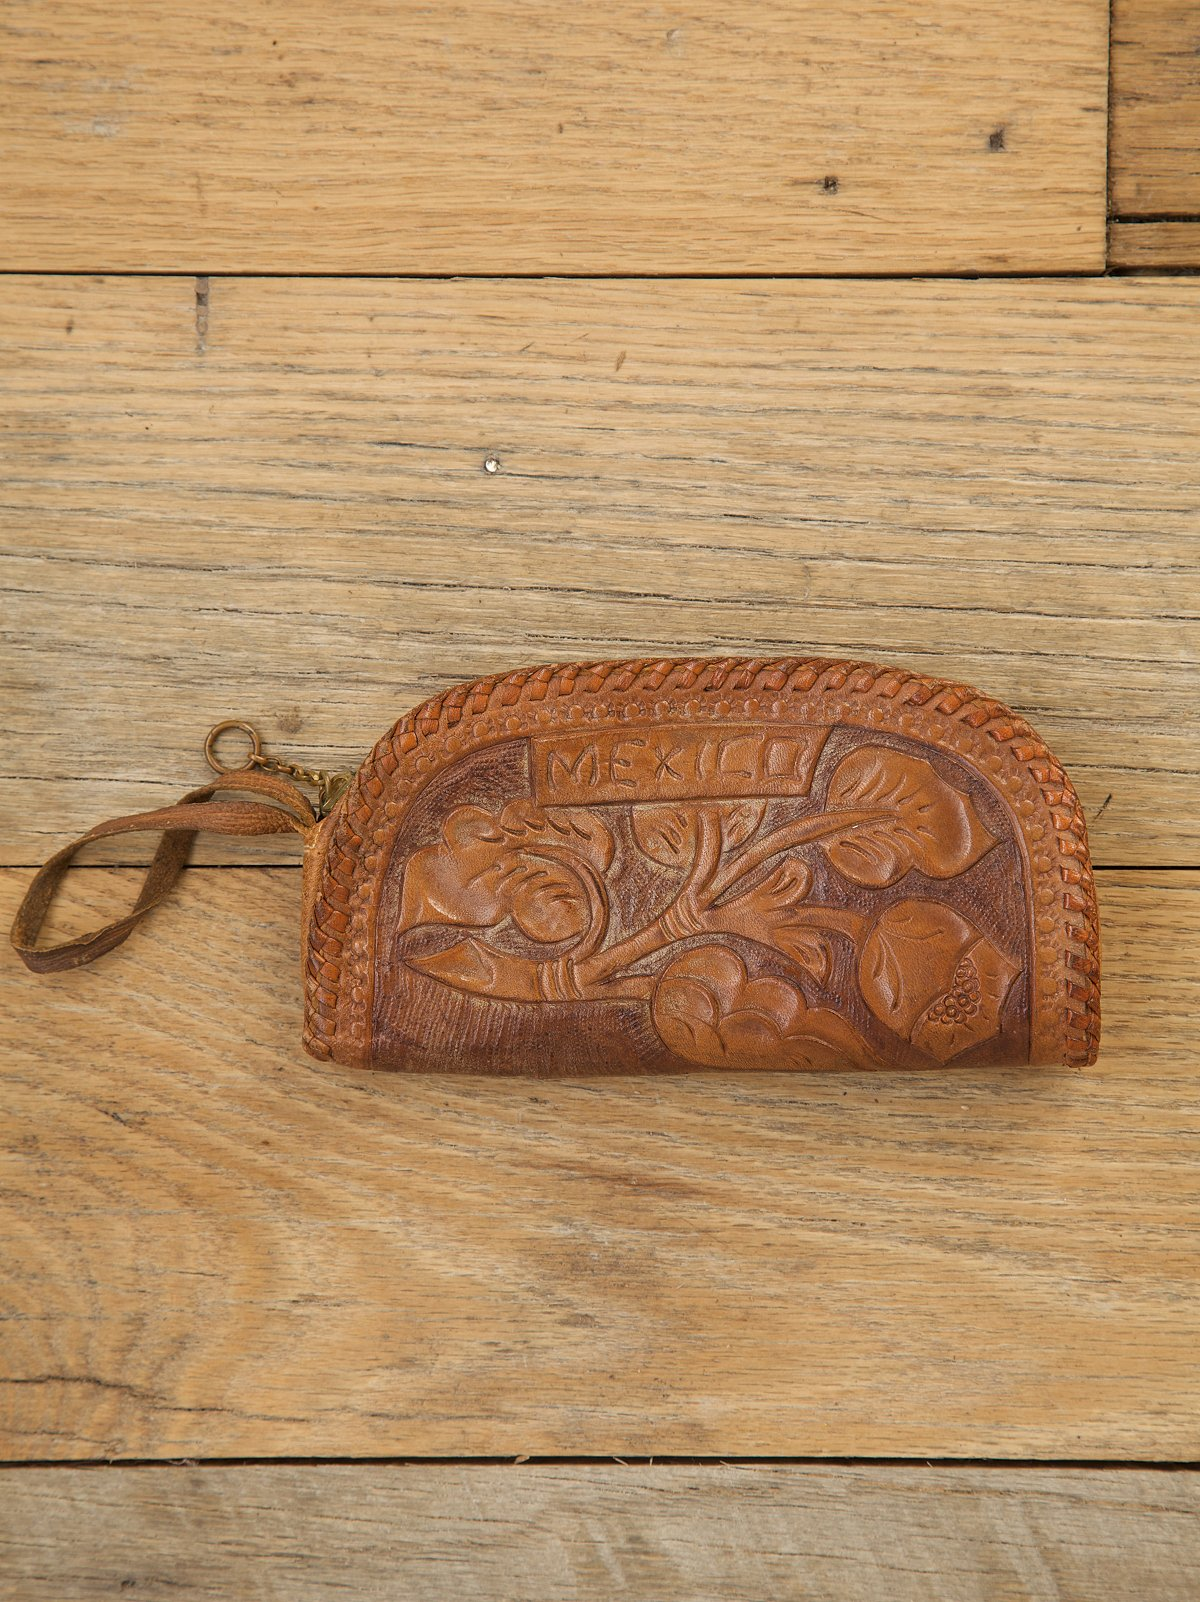 Vintage Tooled Leather Change Purse